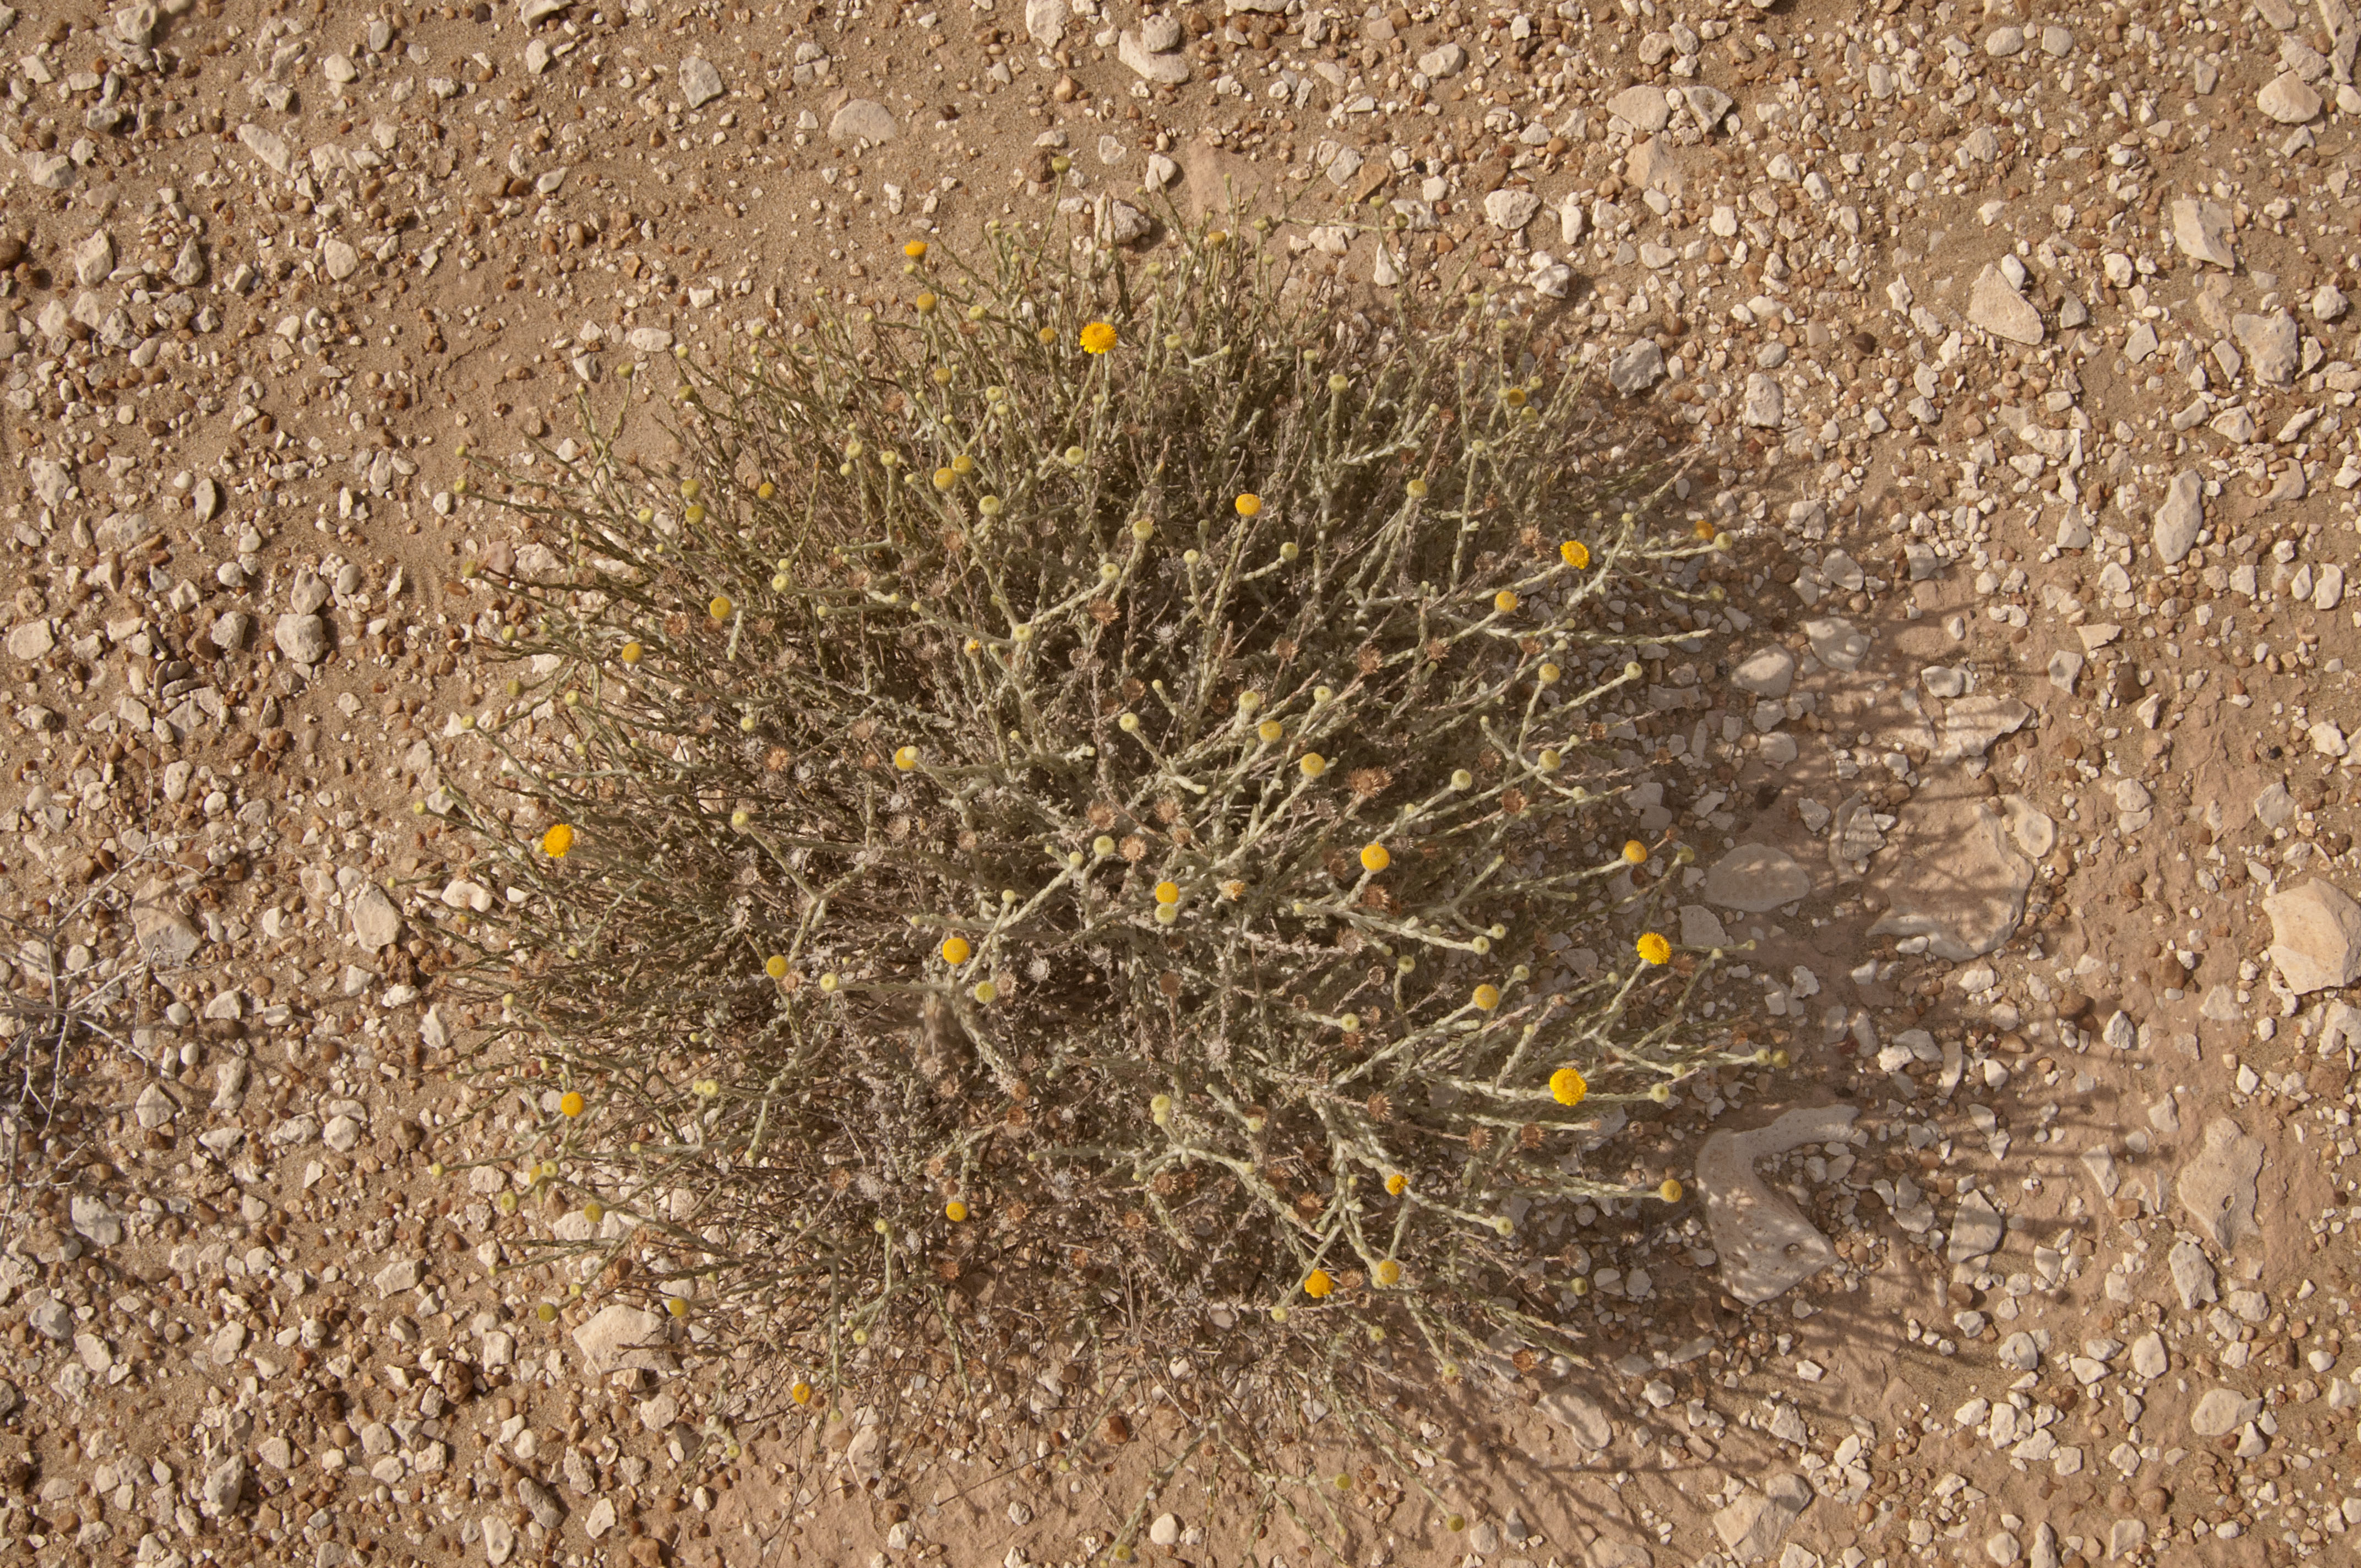 Photo 1175 11 Desert Plant With Yellow Flowers Pulicariasayeed